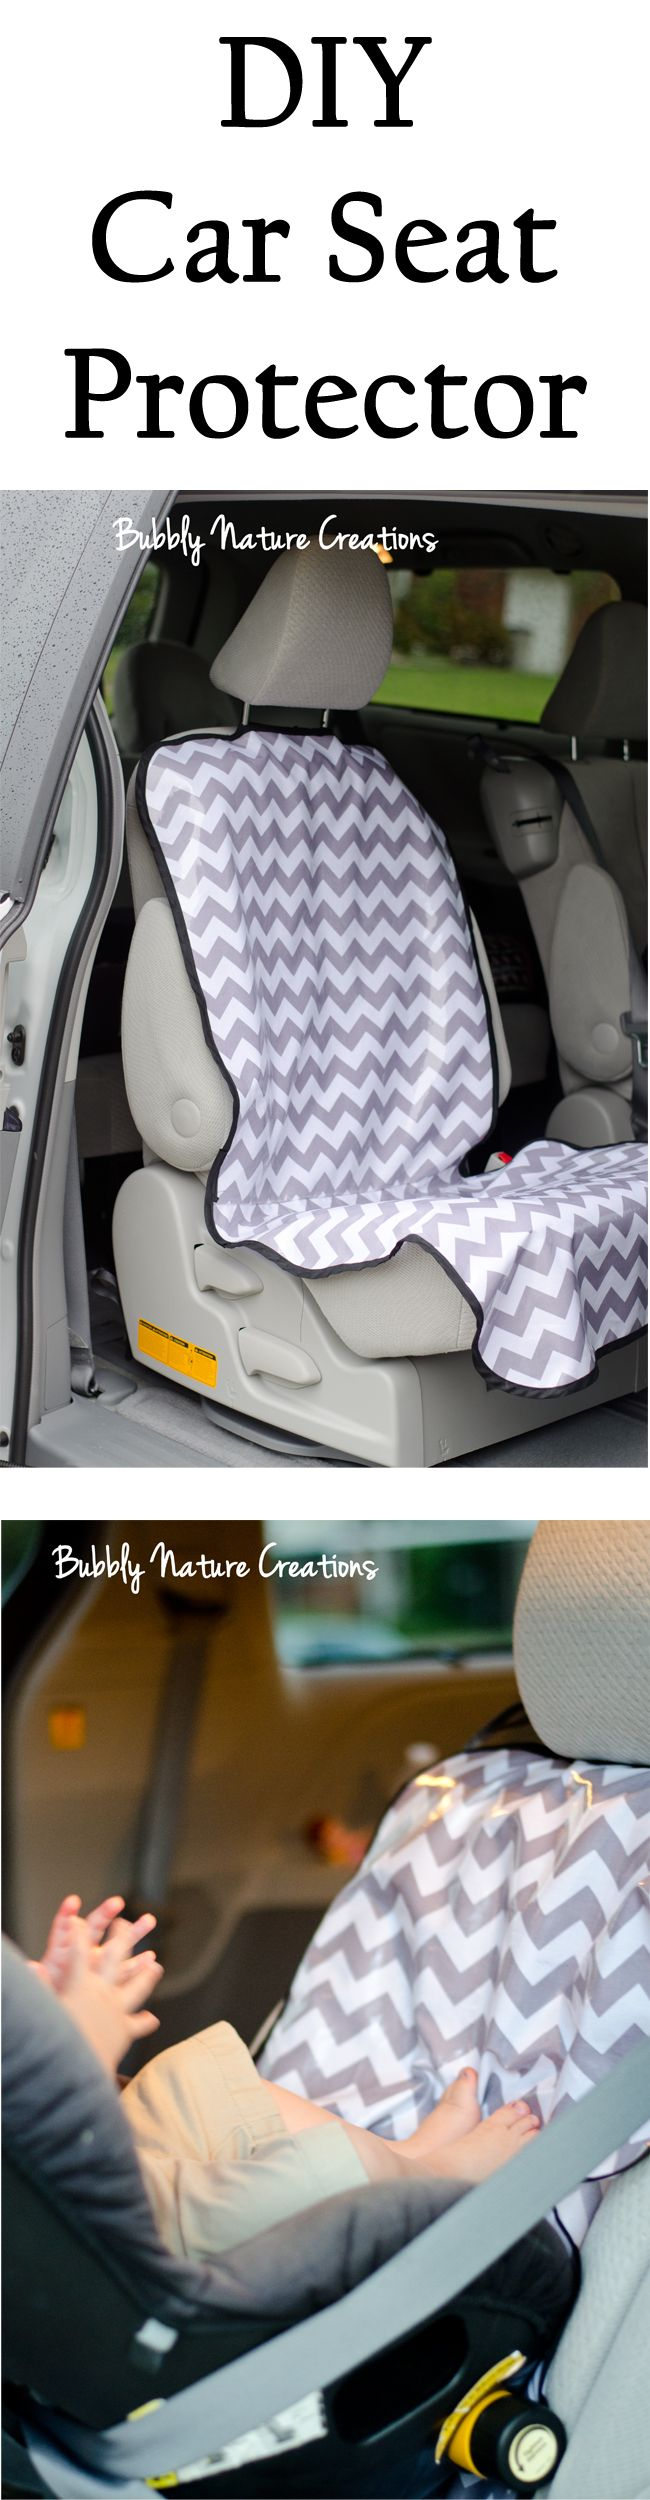 DIY Car Seat Protector. So need this. I hate it when I move the booster seats for adults and have to madly dust away crumbs.... OR when my daughter throws up and it leaks down to the carseat! When we get new cars